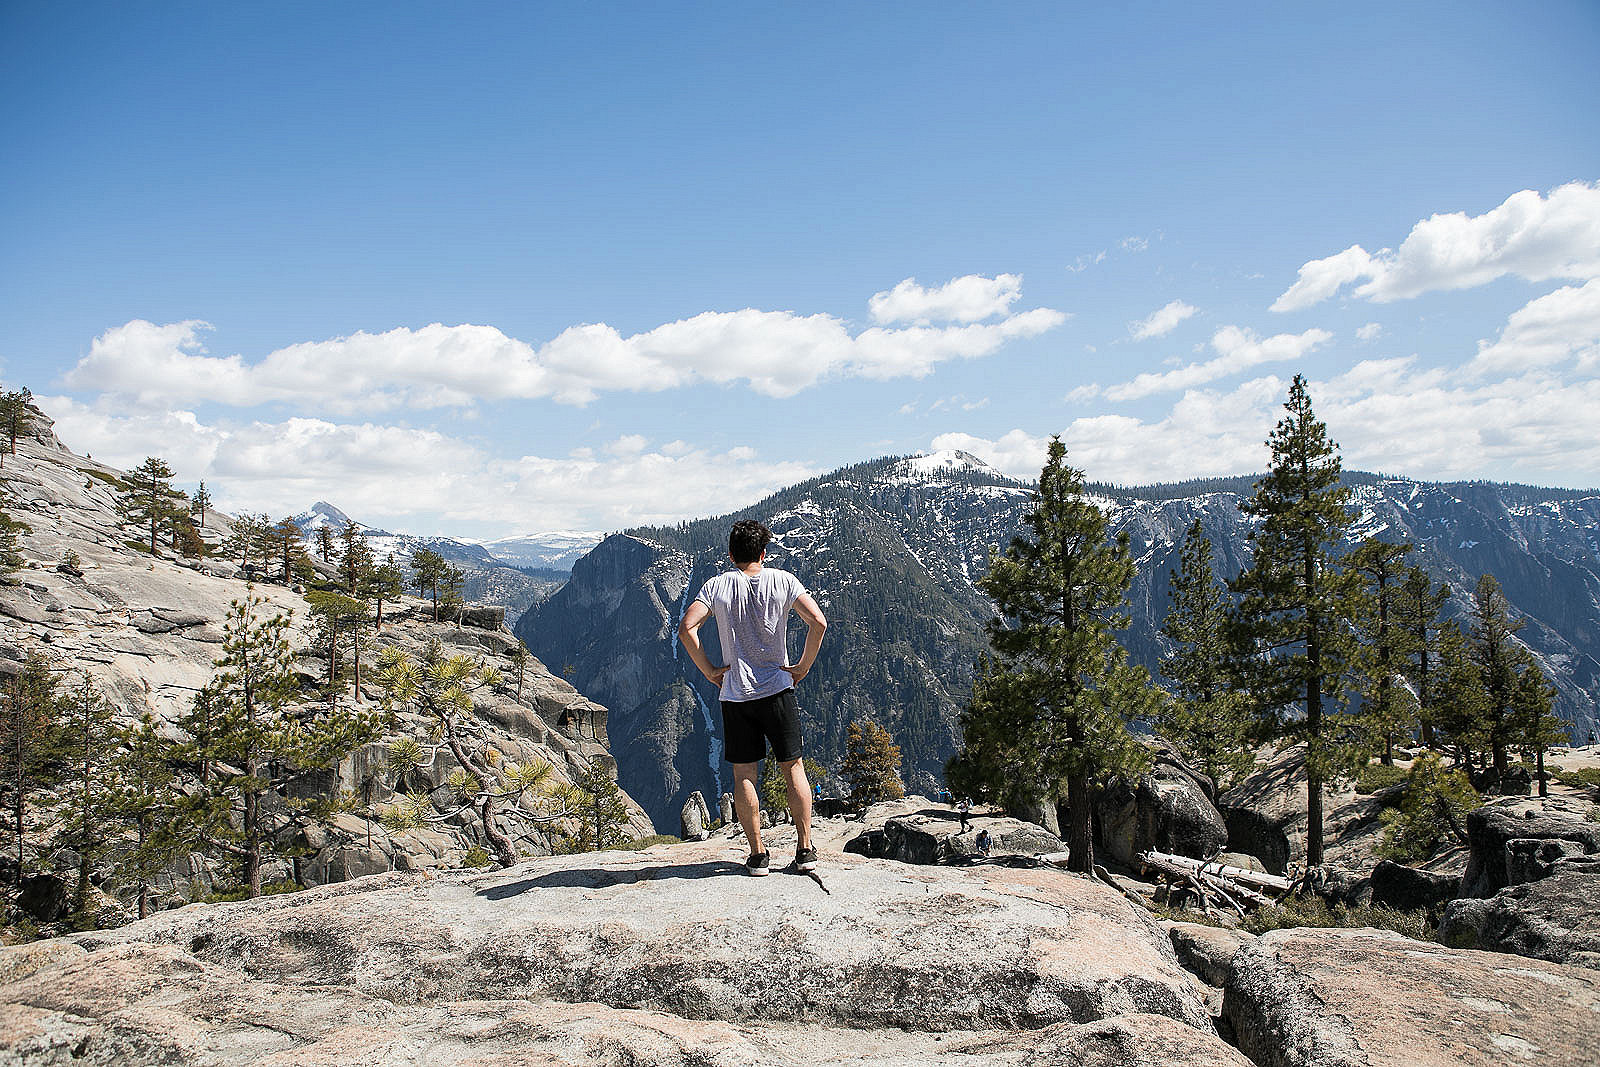 Most Beautiful Views of the Yosemite Valley: Hiking the Upper Yosemite Falls Trail